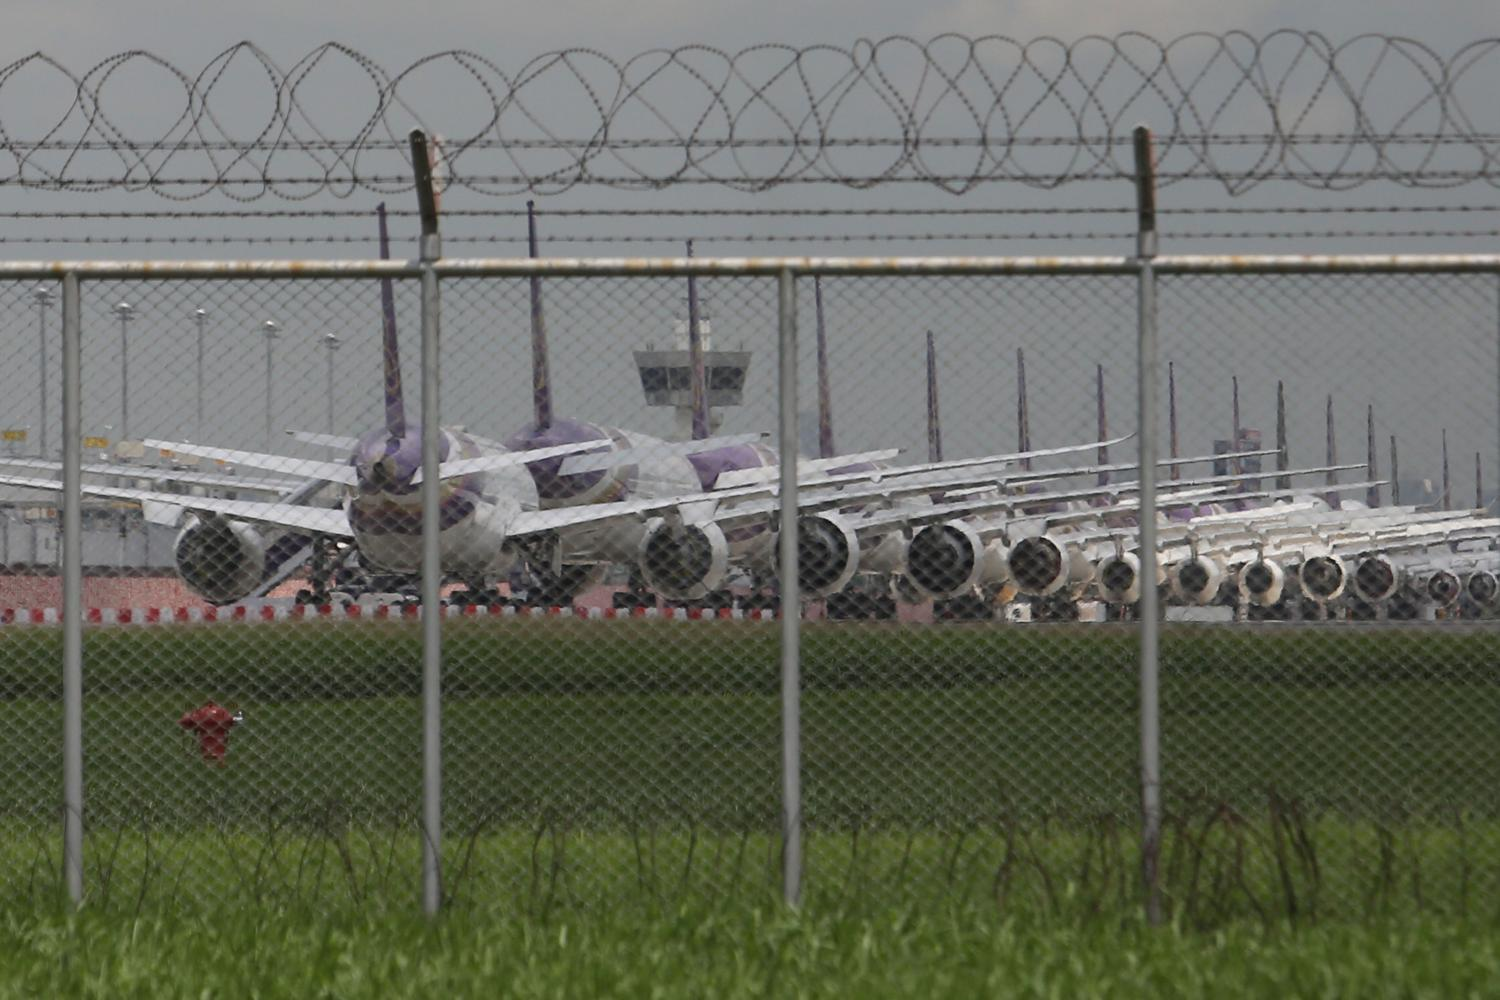 Thai Airways airplanes are seen parked on the tarmac at Suvarnabhumi airport. The Civil Aviation Authority of Thailand has laid out further measures to help airlines cope with the Covid-19 pandemic. Wichan Charoenkiatpakul